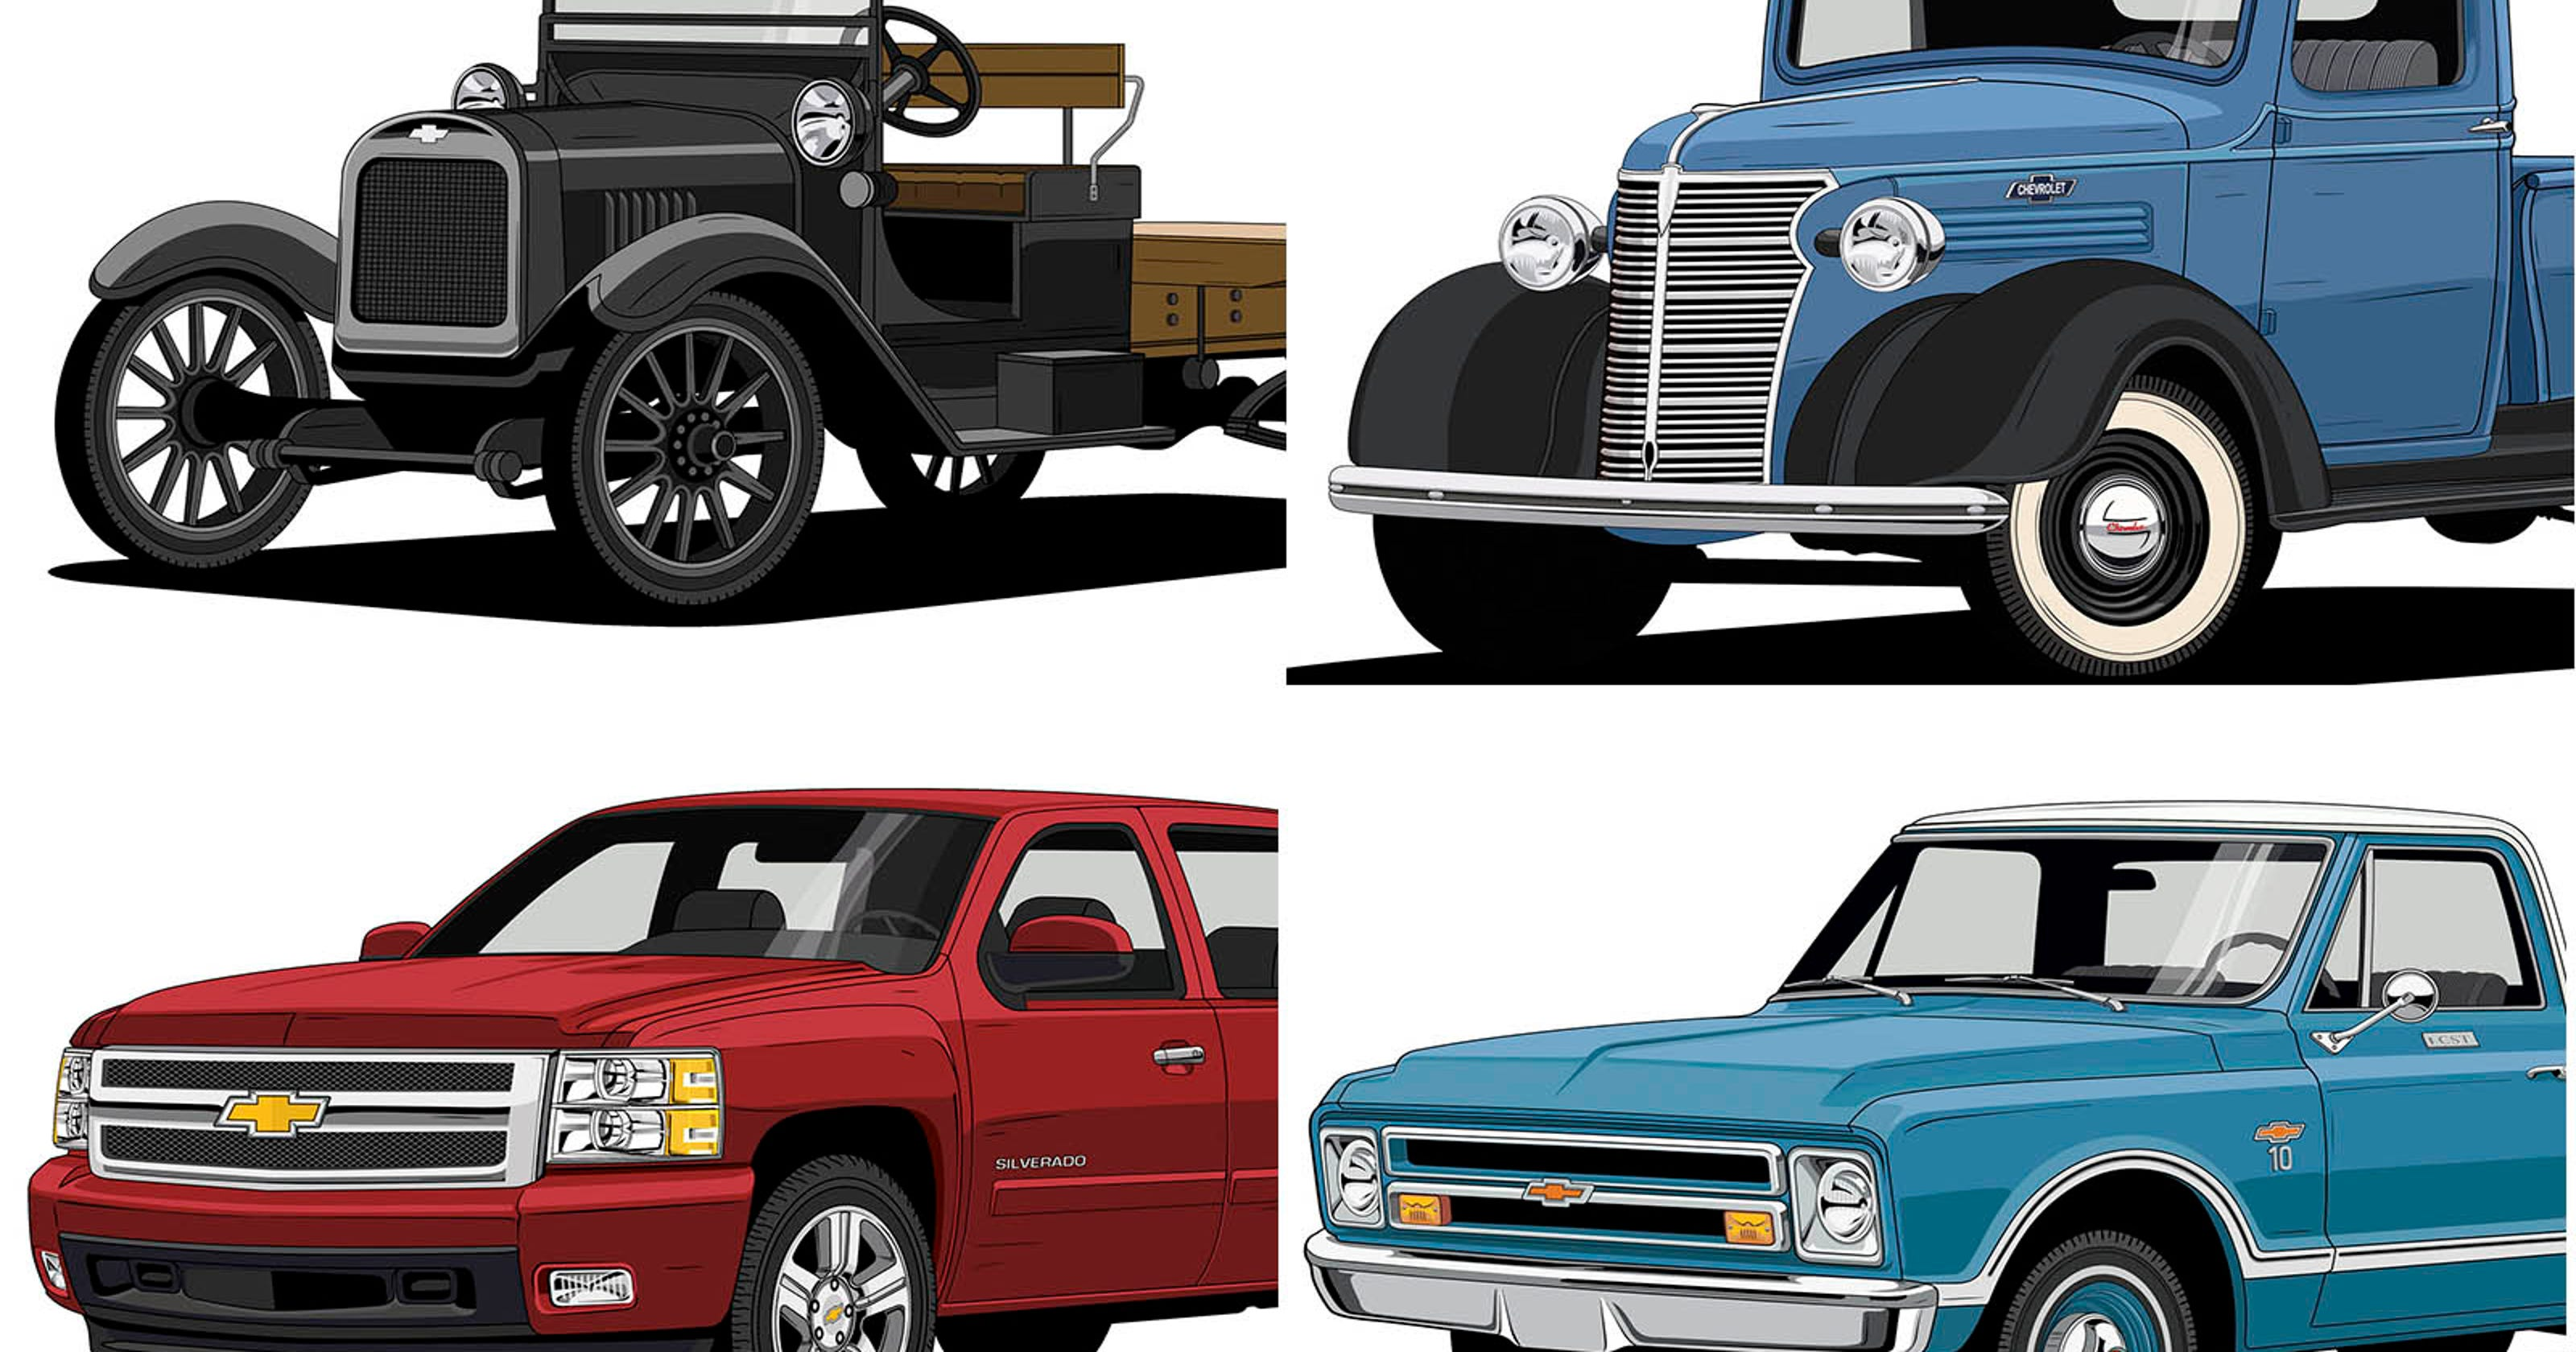 Chevy Trucks Celebrate 100 Years Shaping How Americans Work And Travel C10 Suburban For Sale